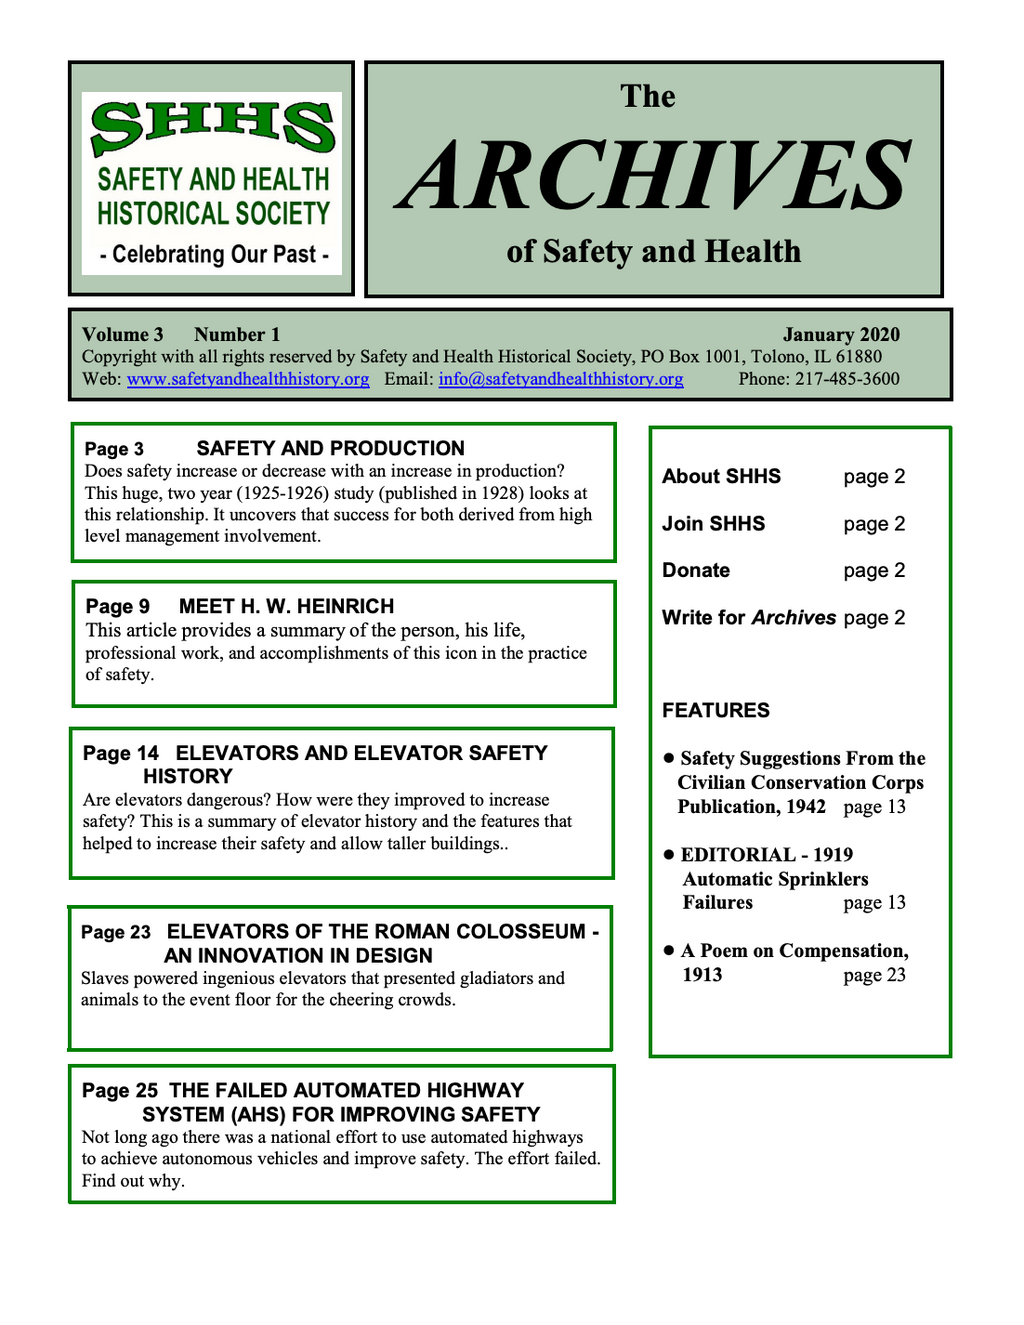 Volume 3 Number 1 - The Archives Of Safety And Health